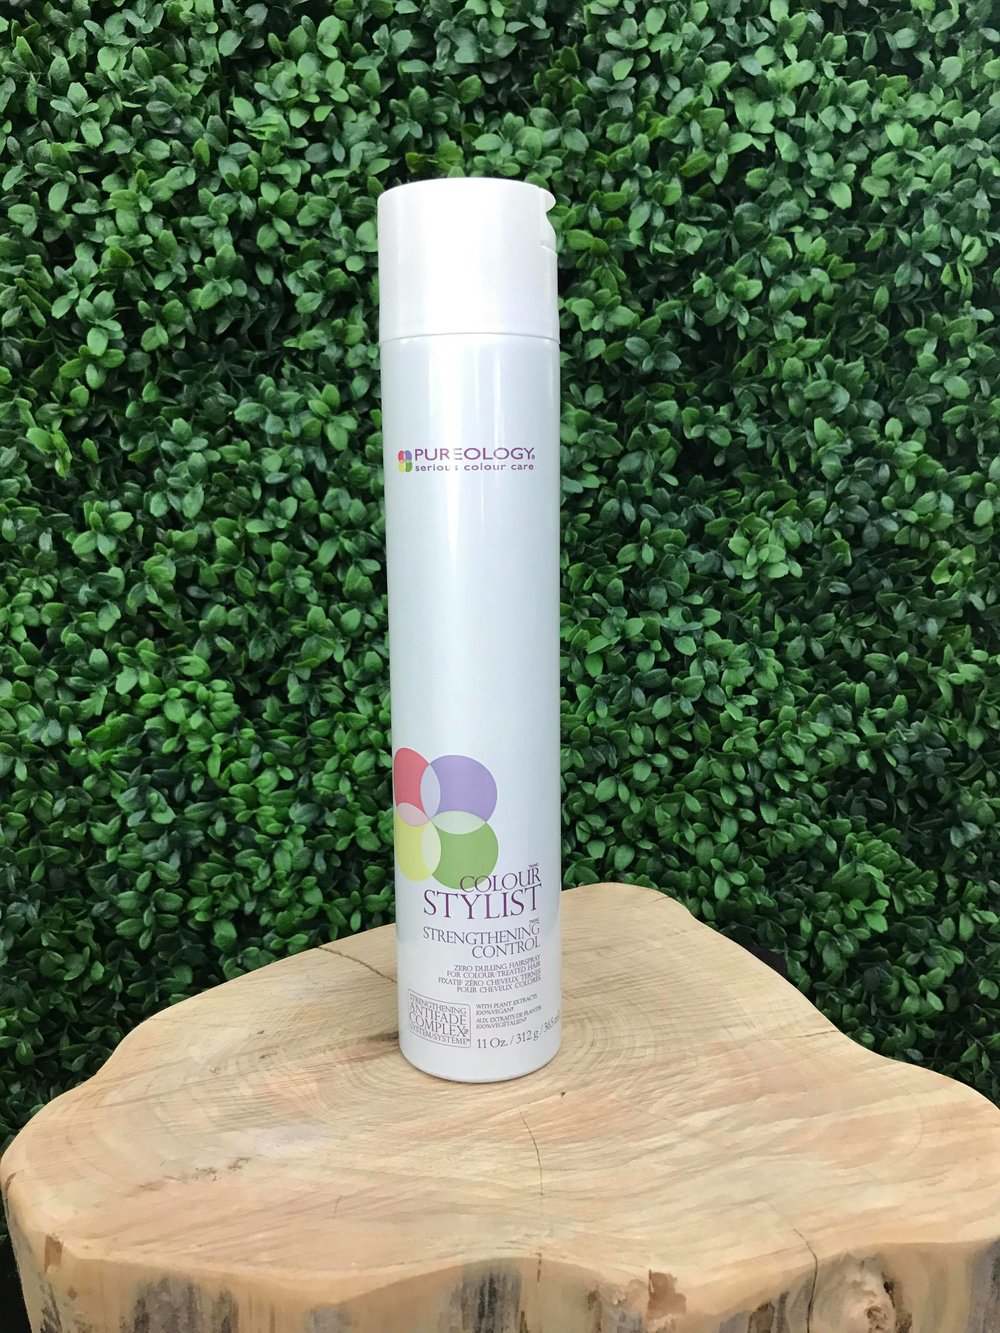 Colour Stylist Strengthening Control 365ml - $39.00